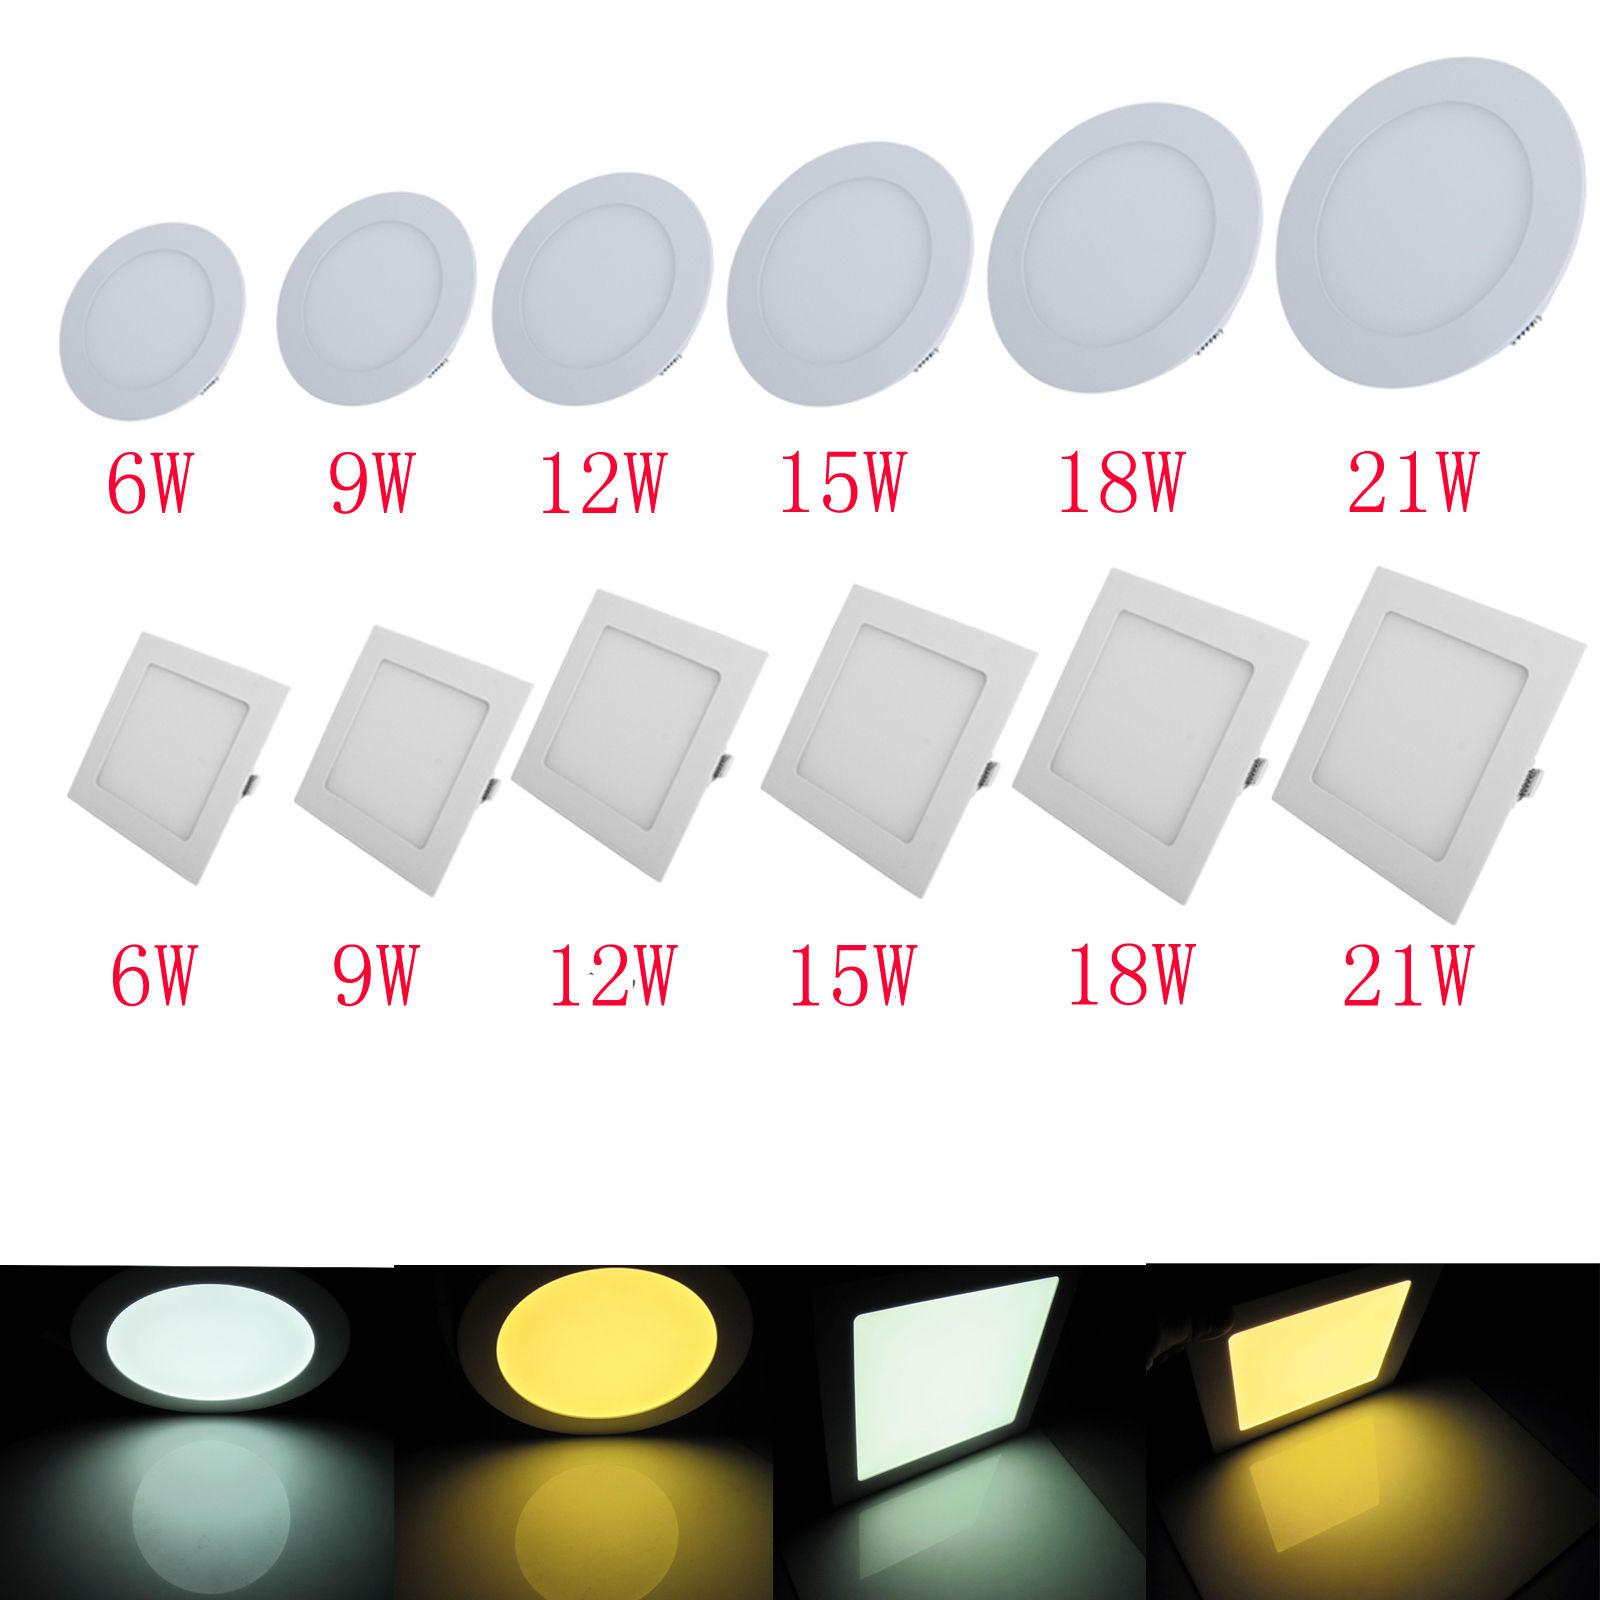 Ceiling Lights Punctual New Special Thin Led Panel Lamp Warm White Cool White Ac 85-265v Home Decoration Light Recessed Ceiling Spot Lamp 4w 9w 12w 24w Back To Search Resultslights & Lighting